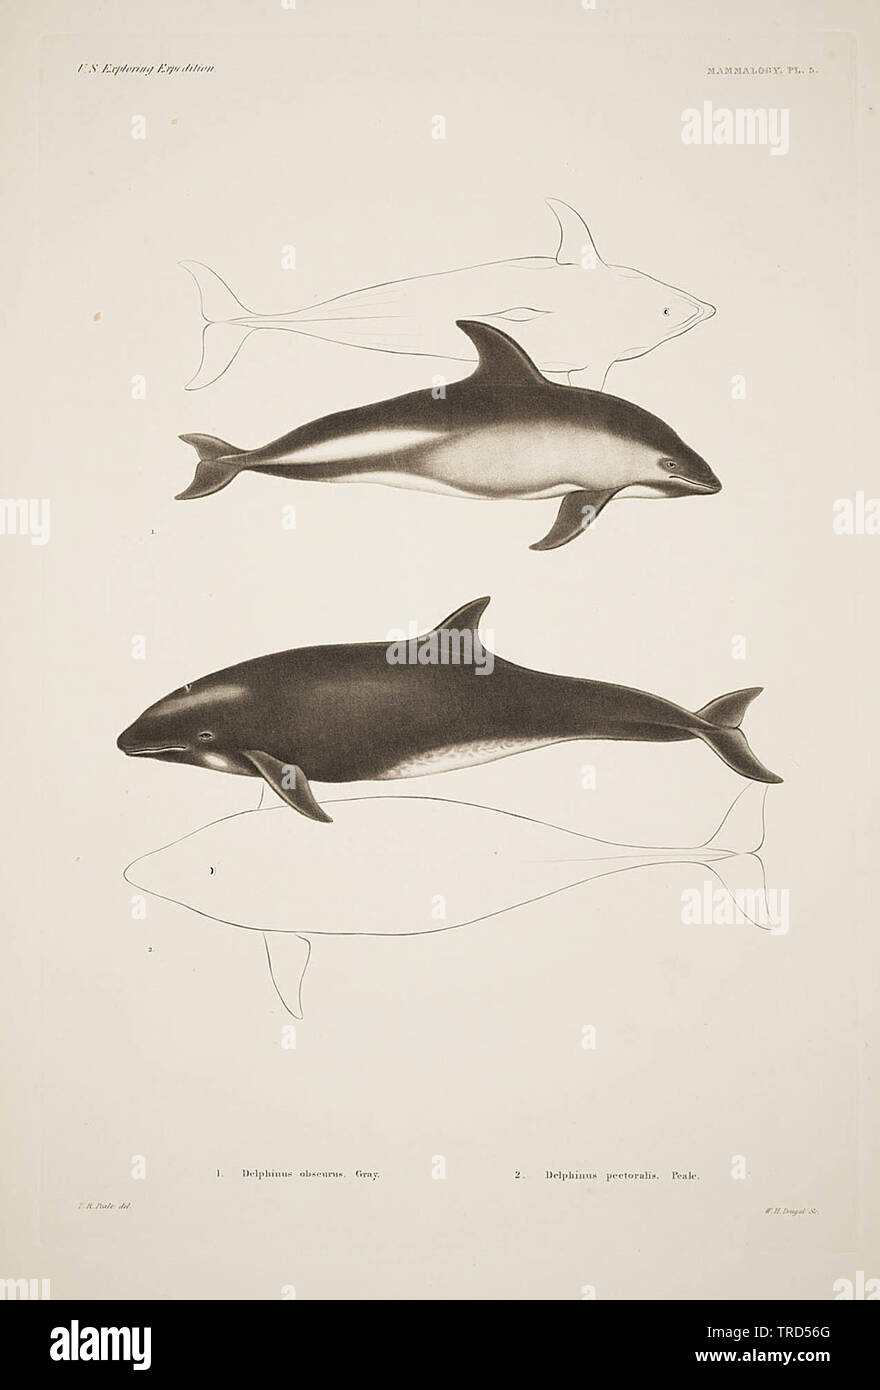 Dusky dolphin drawings in Plate 5 of Mammalogy section in Mammalogy and Ornithology (1858) - Stock Image